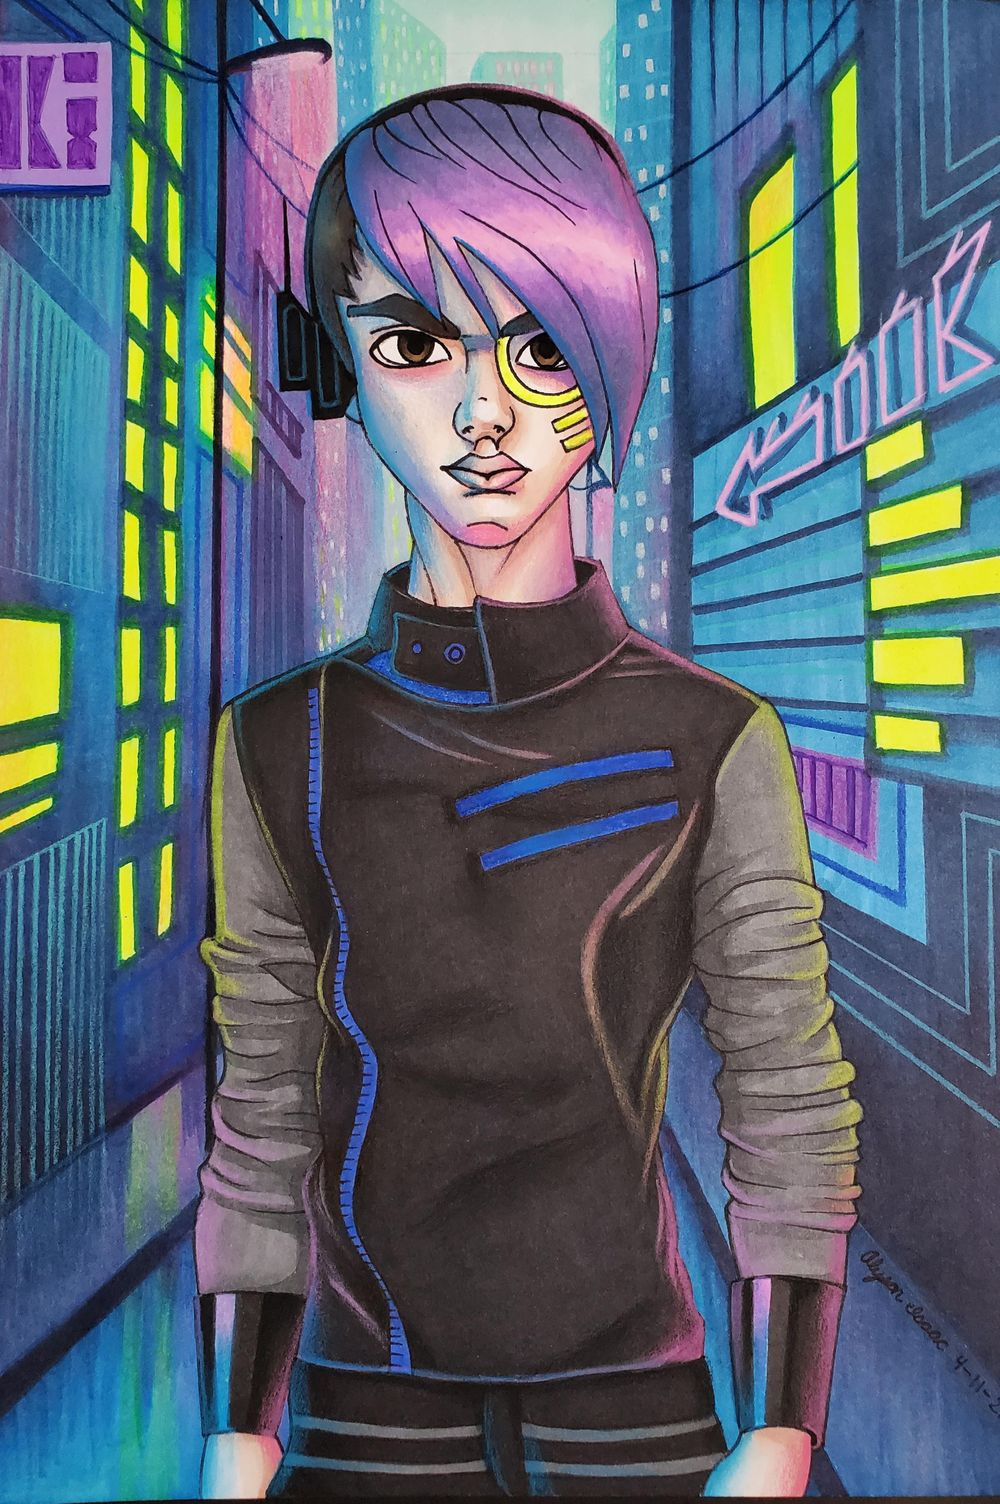 Cyber Punk - image 1 - student project